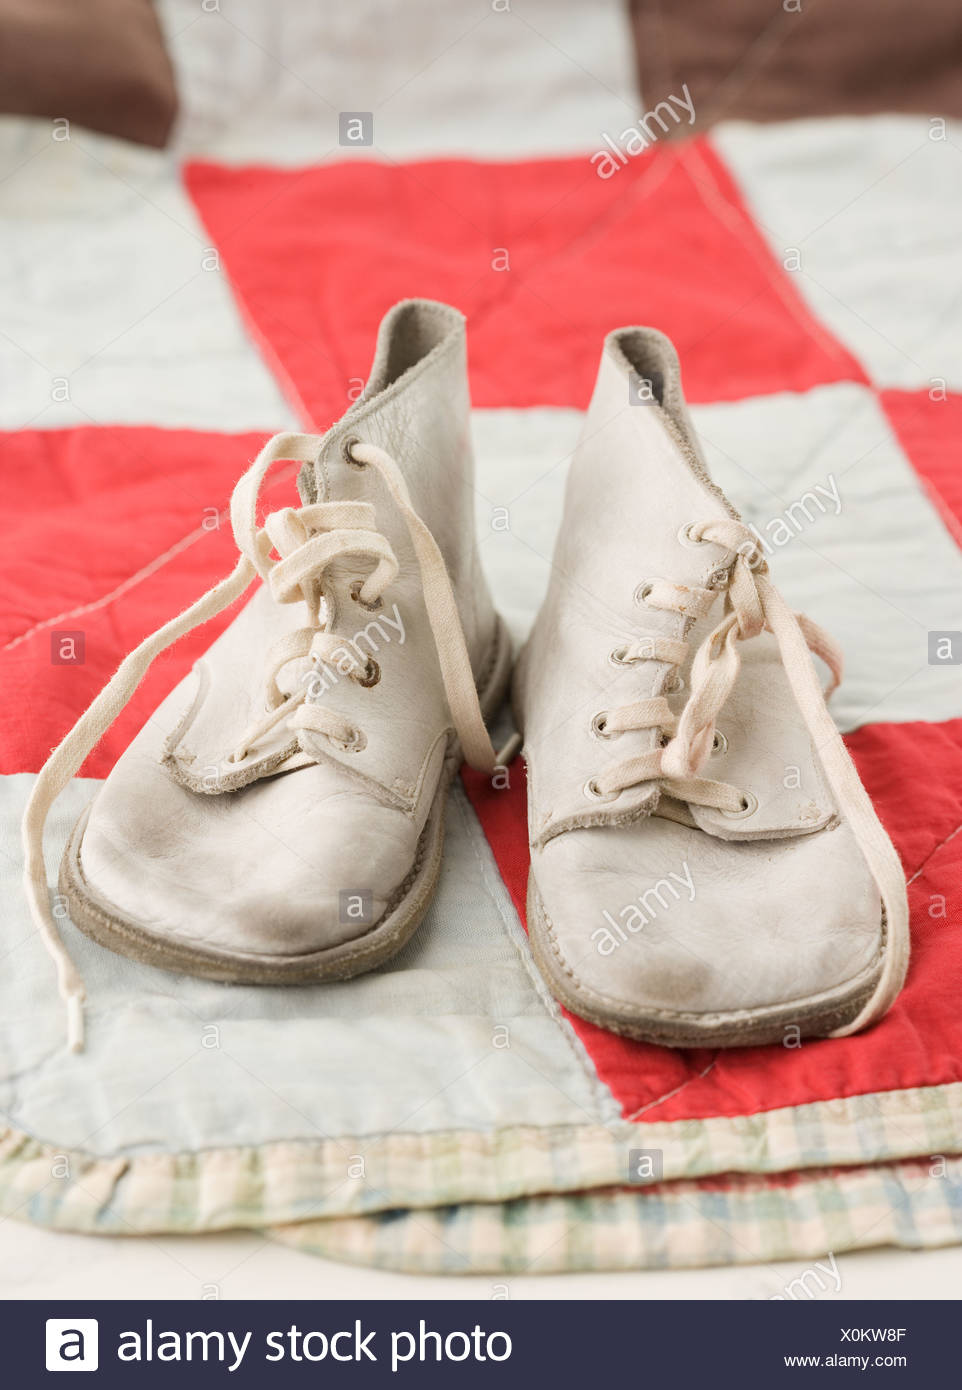 Old fashioned baby shoes 11